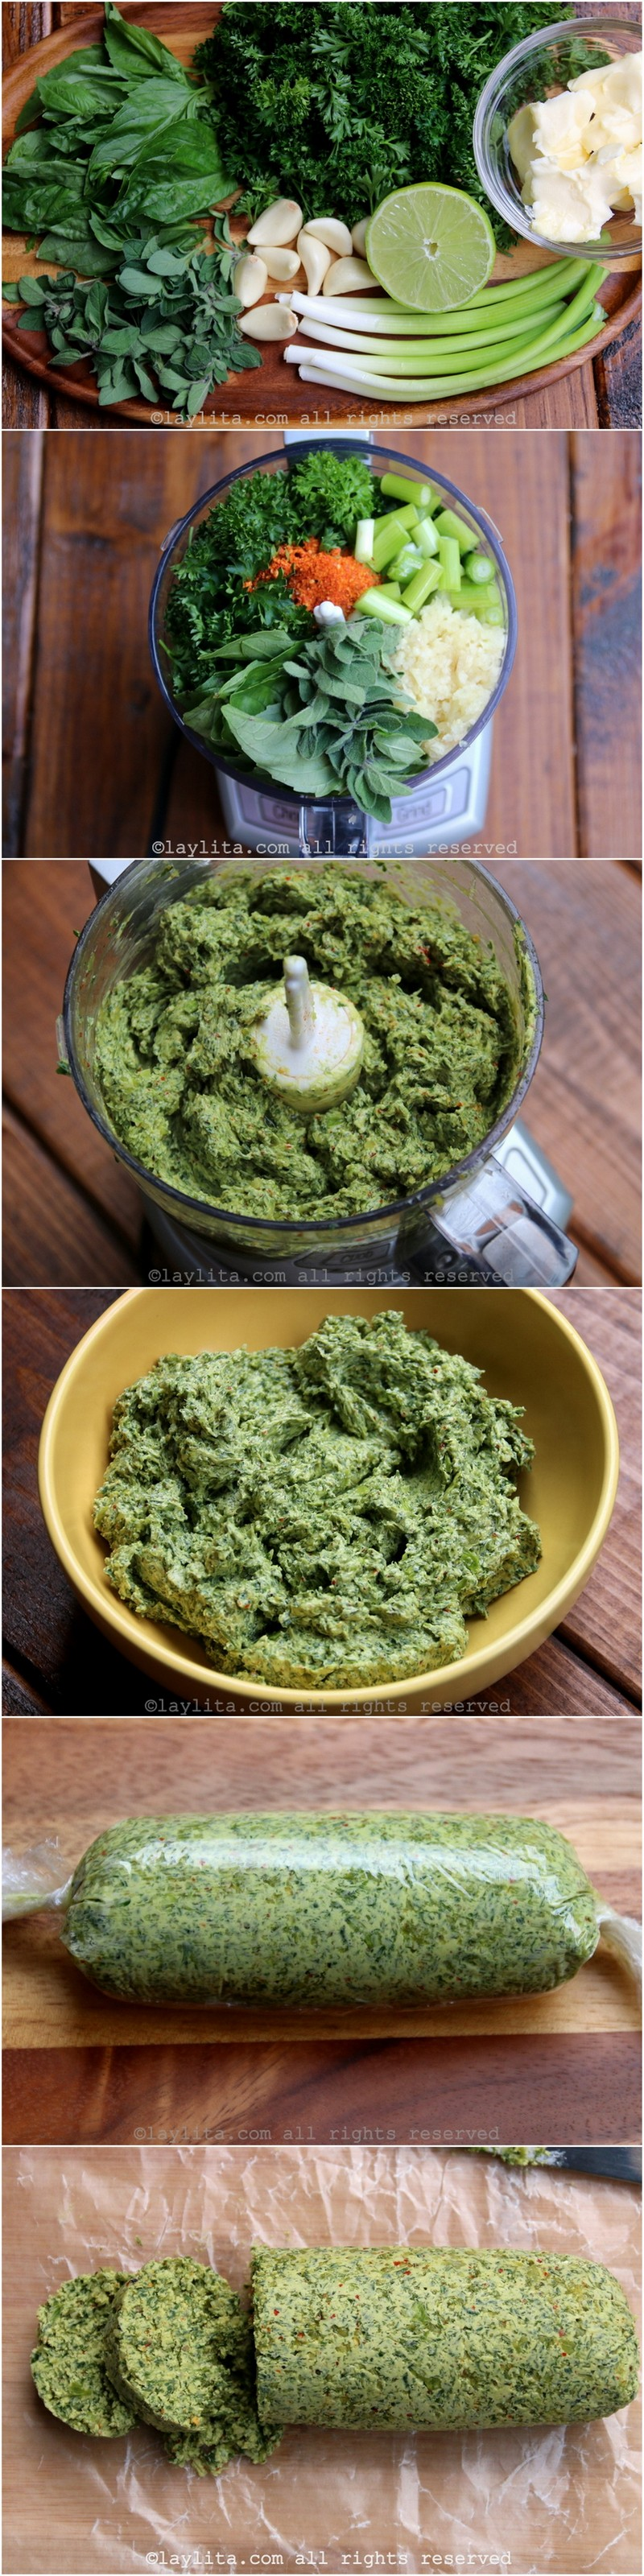 Chimichurri butter preparation